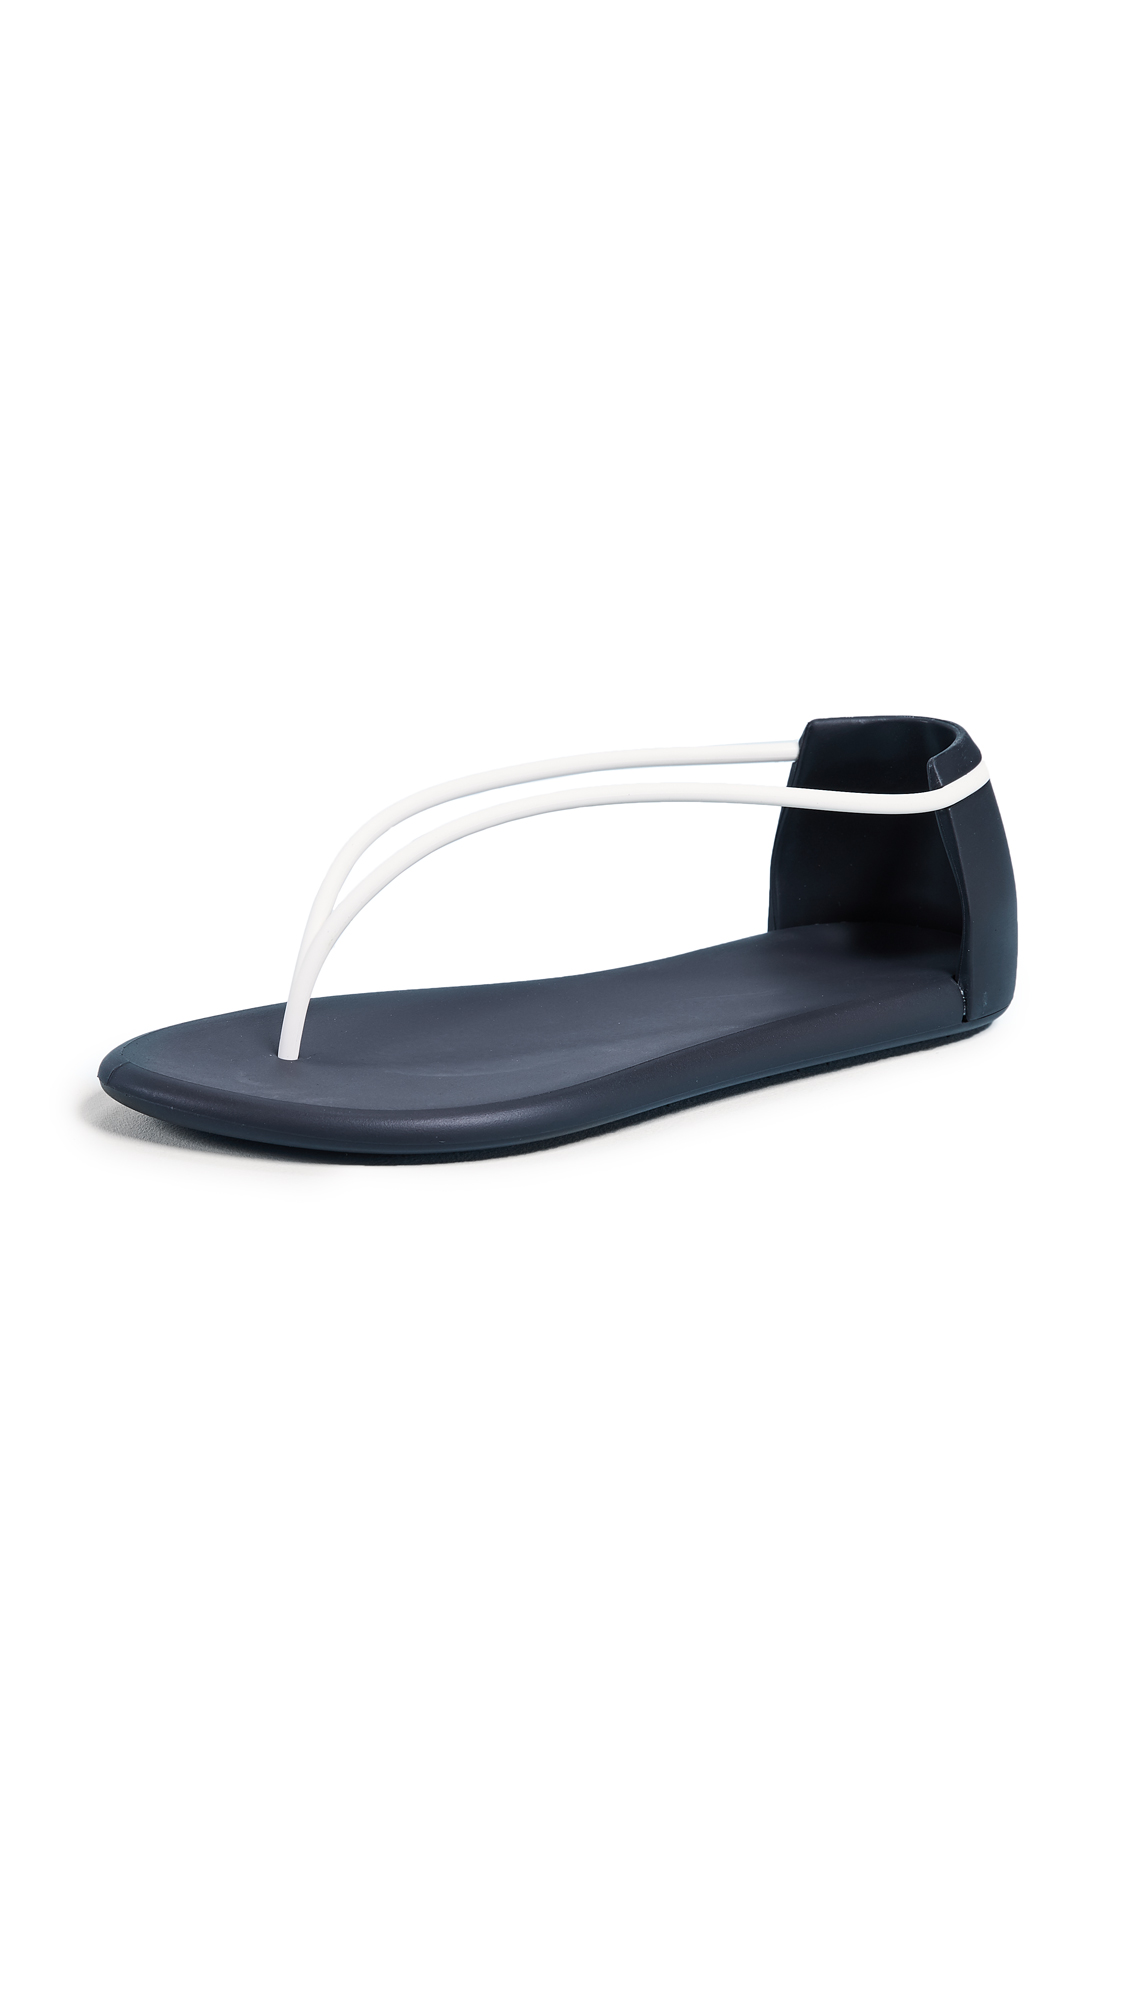 Ipanema Philippe Starck Thing N II Sandals - Black/White